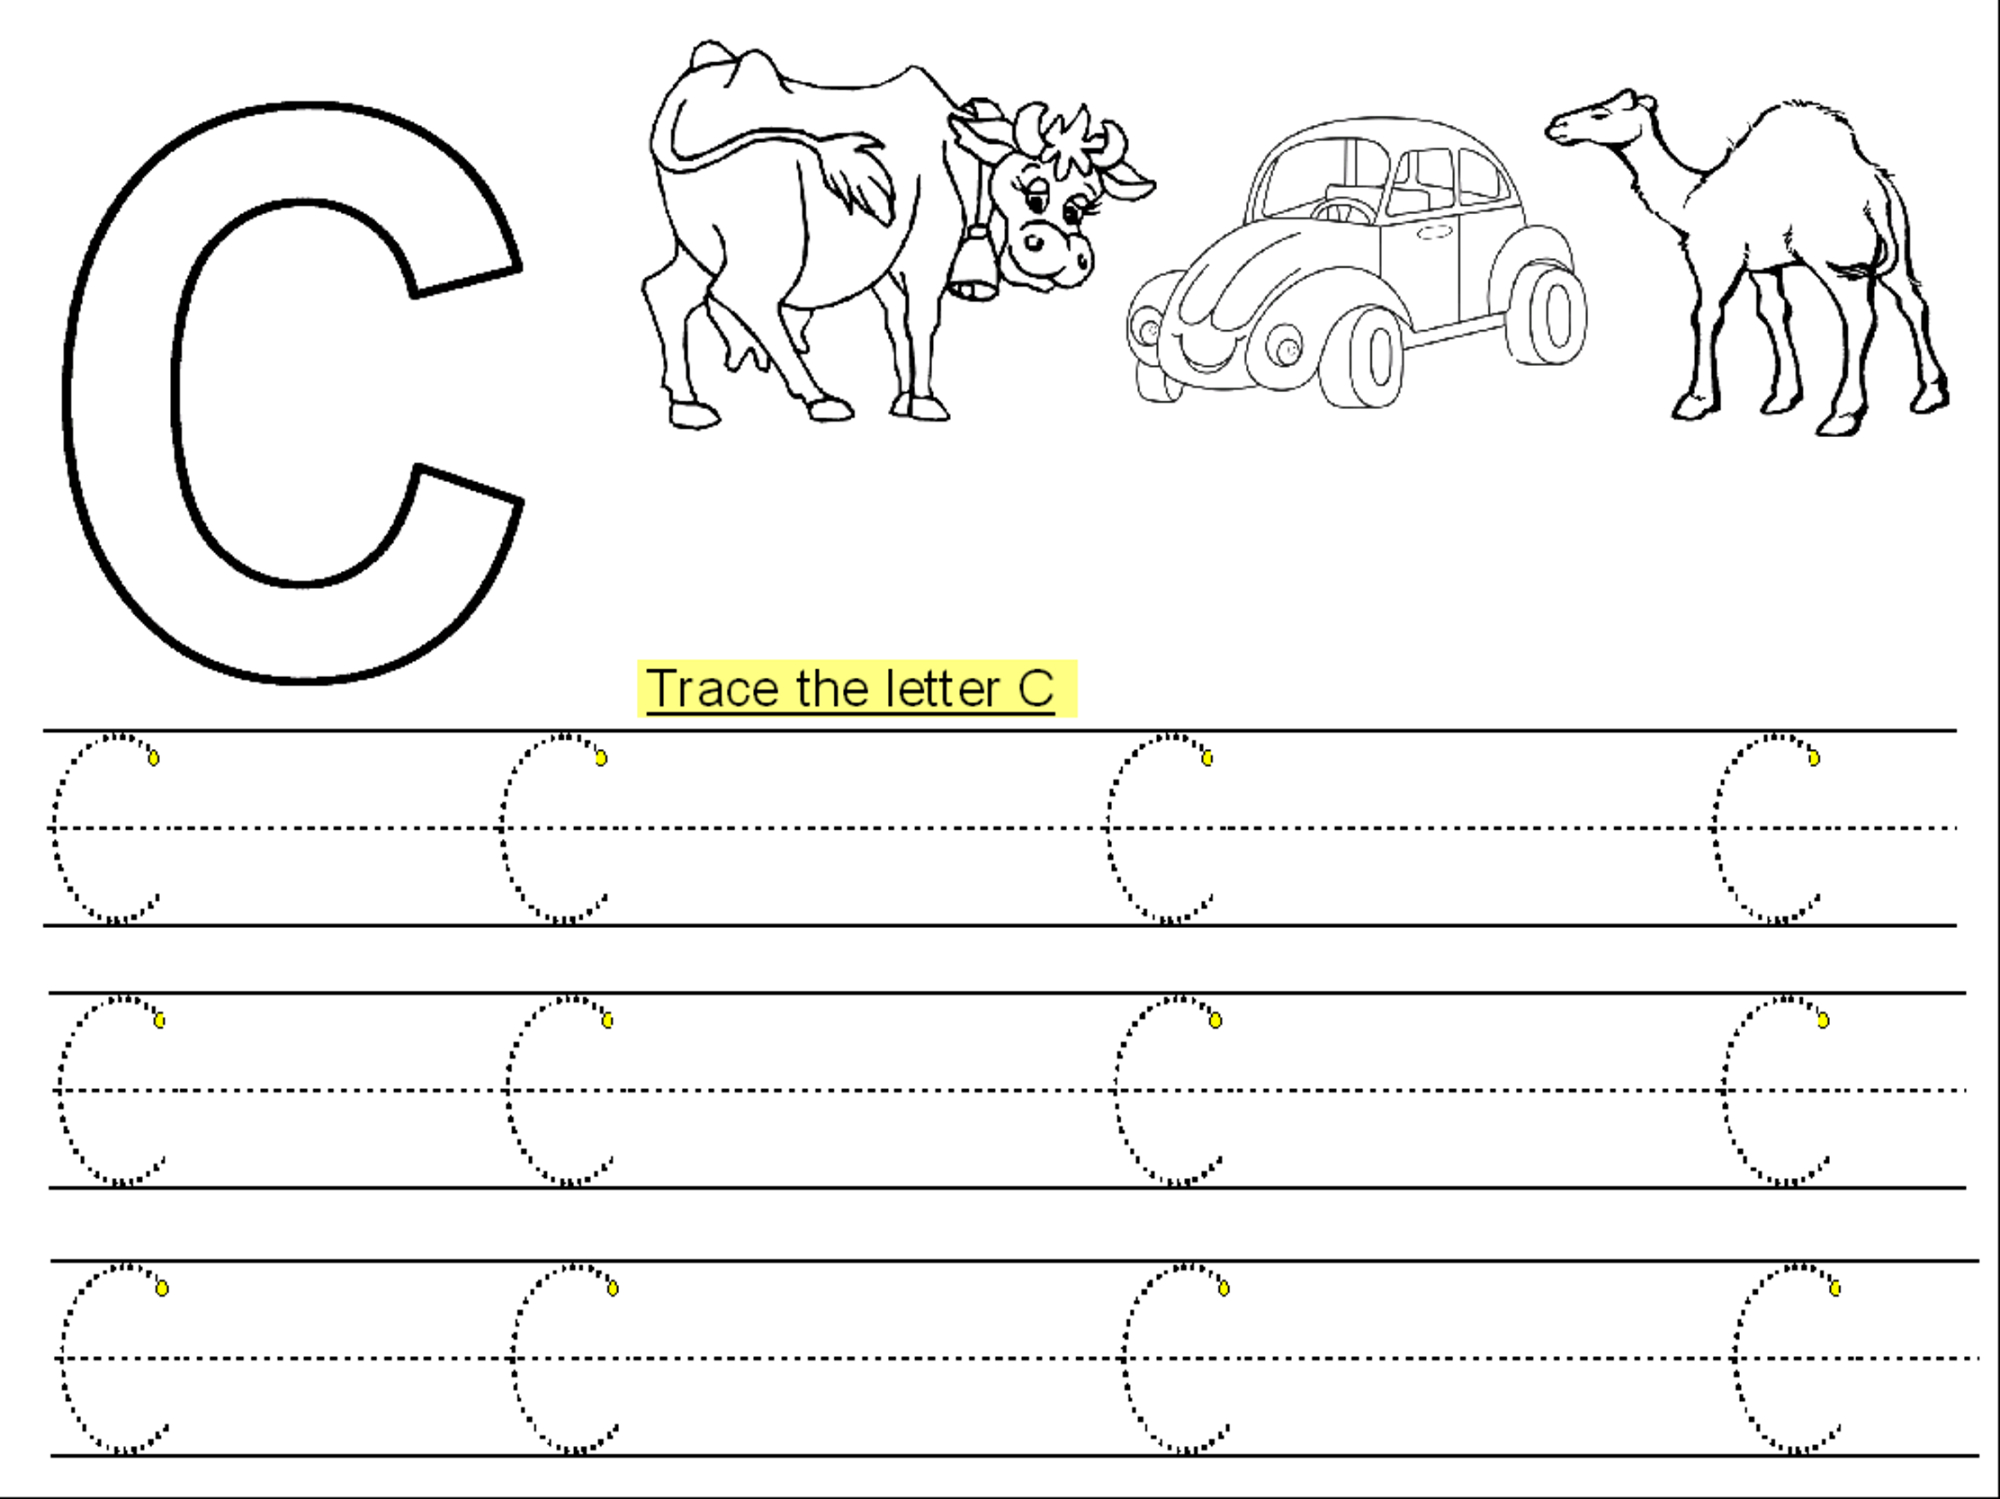 Trace Letter C Printable | Kiddo Shelter - Letter C Puzzle Printable